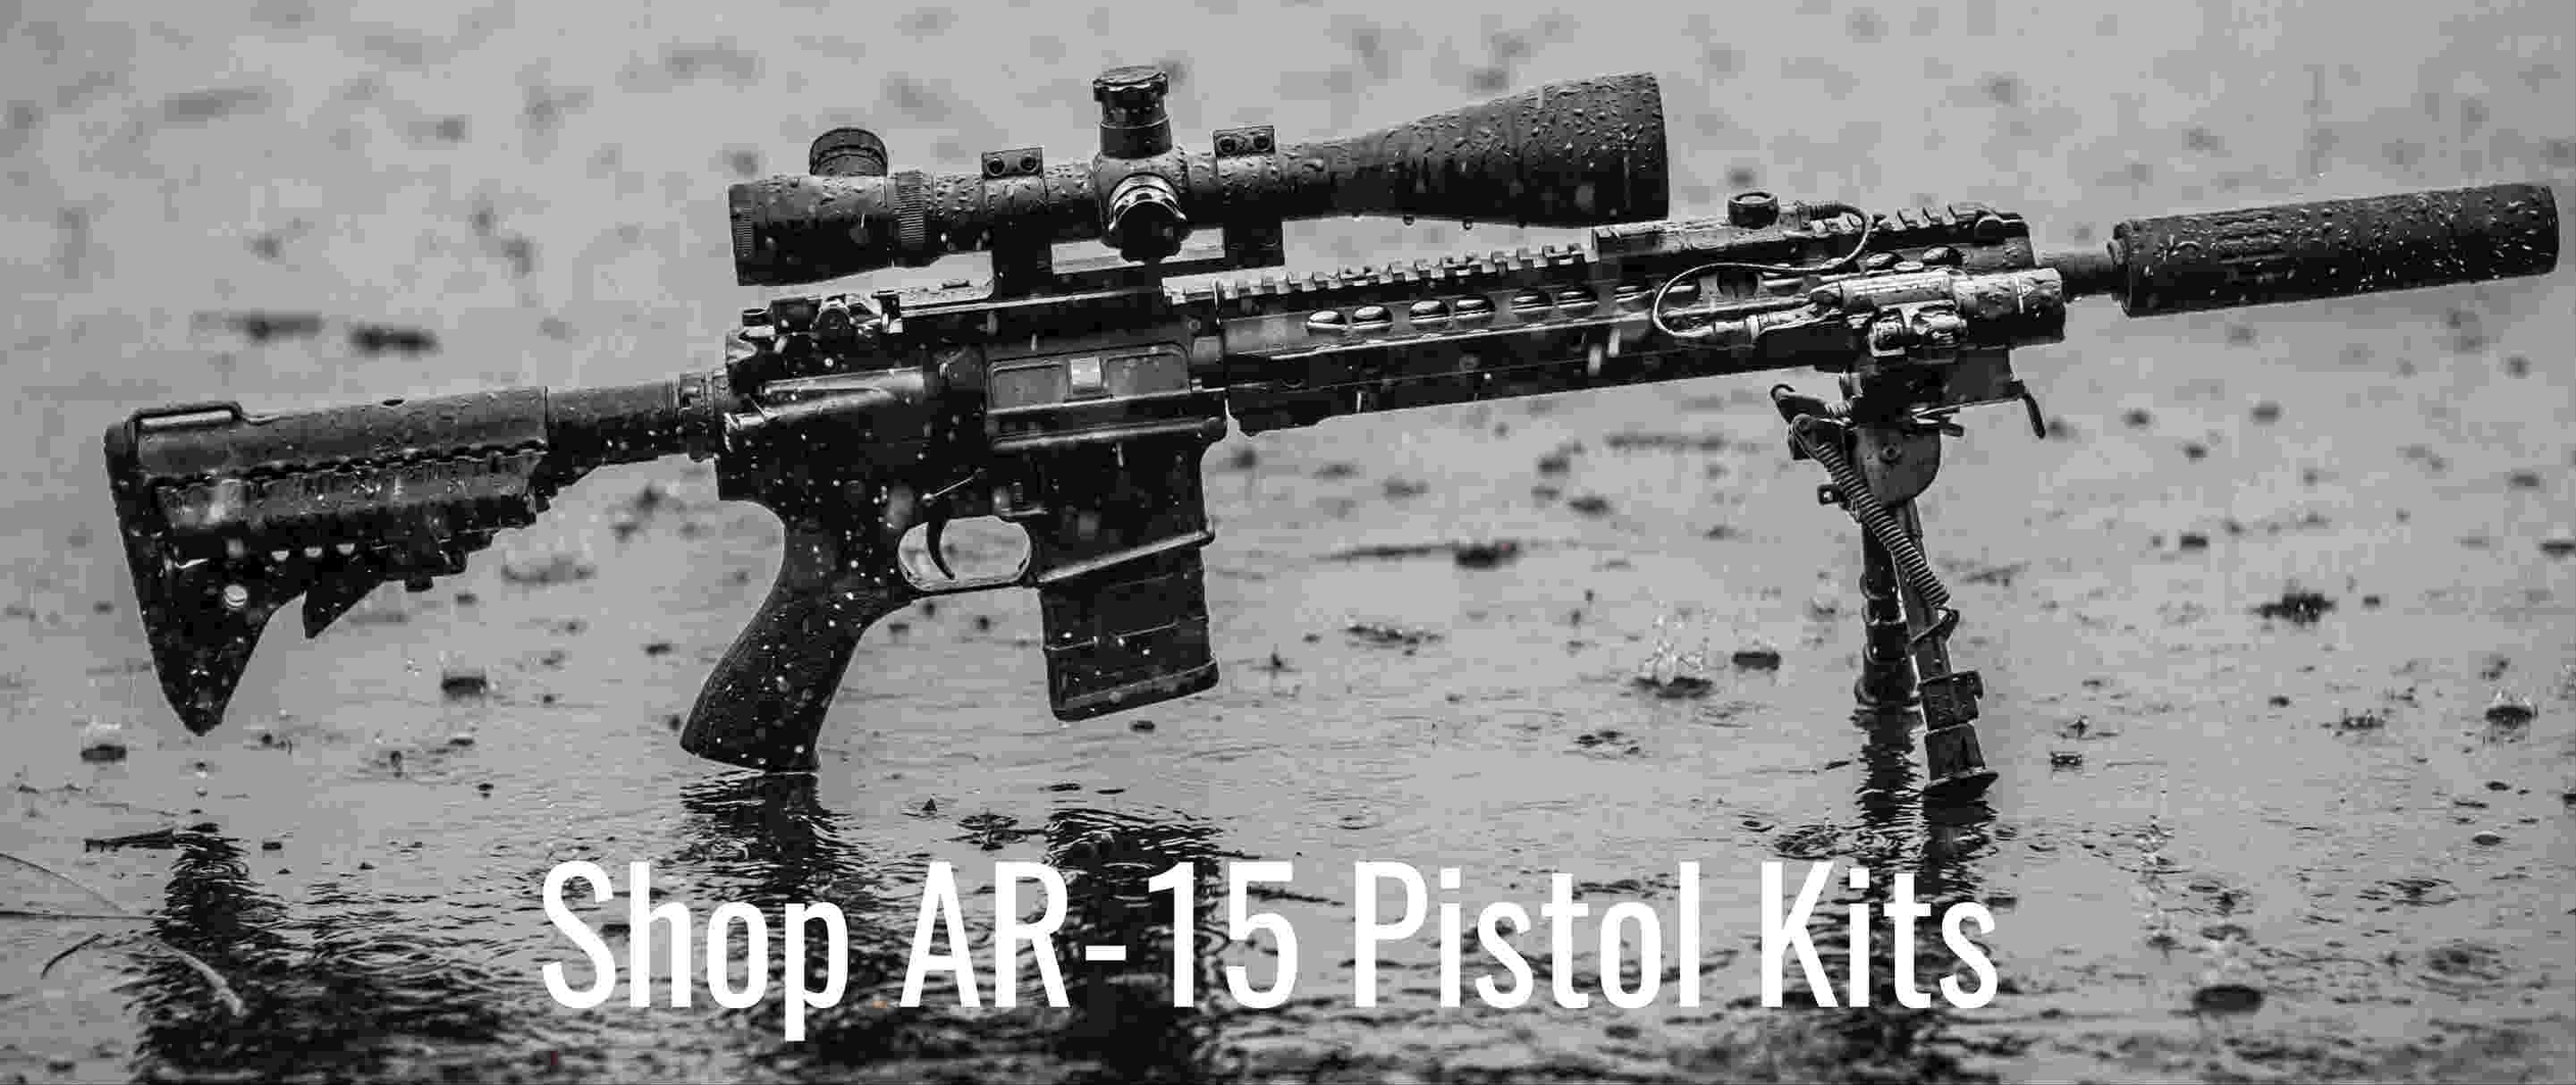 Shop AR-15 Rifle Build Kit - Blog Featured Image